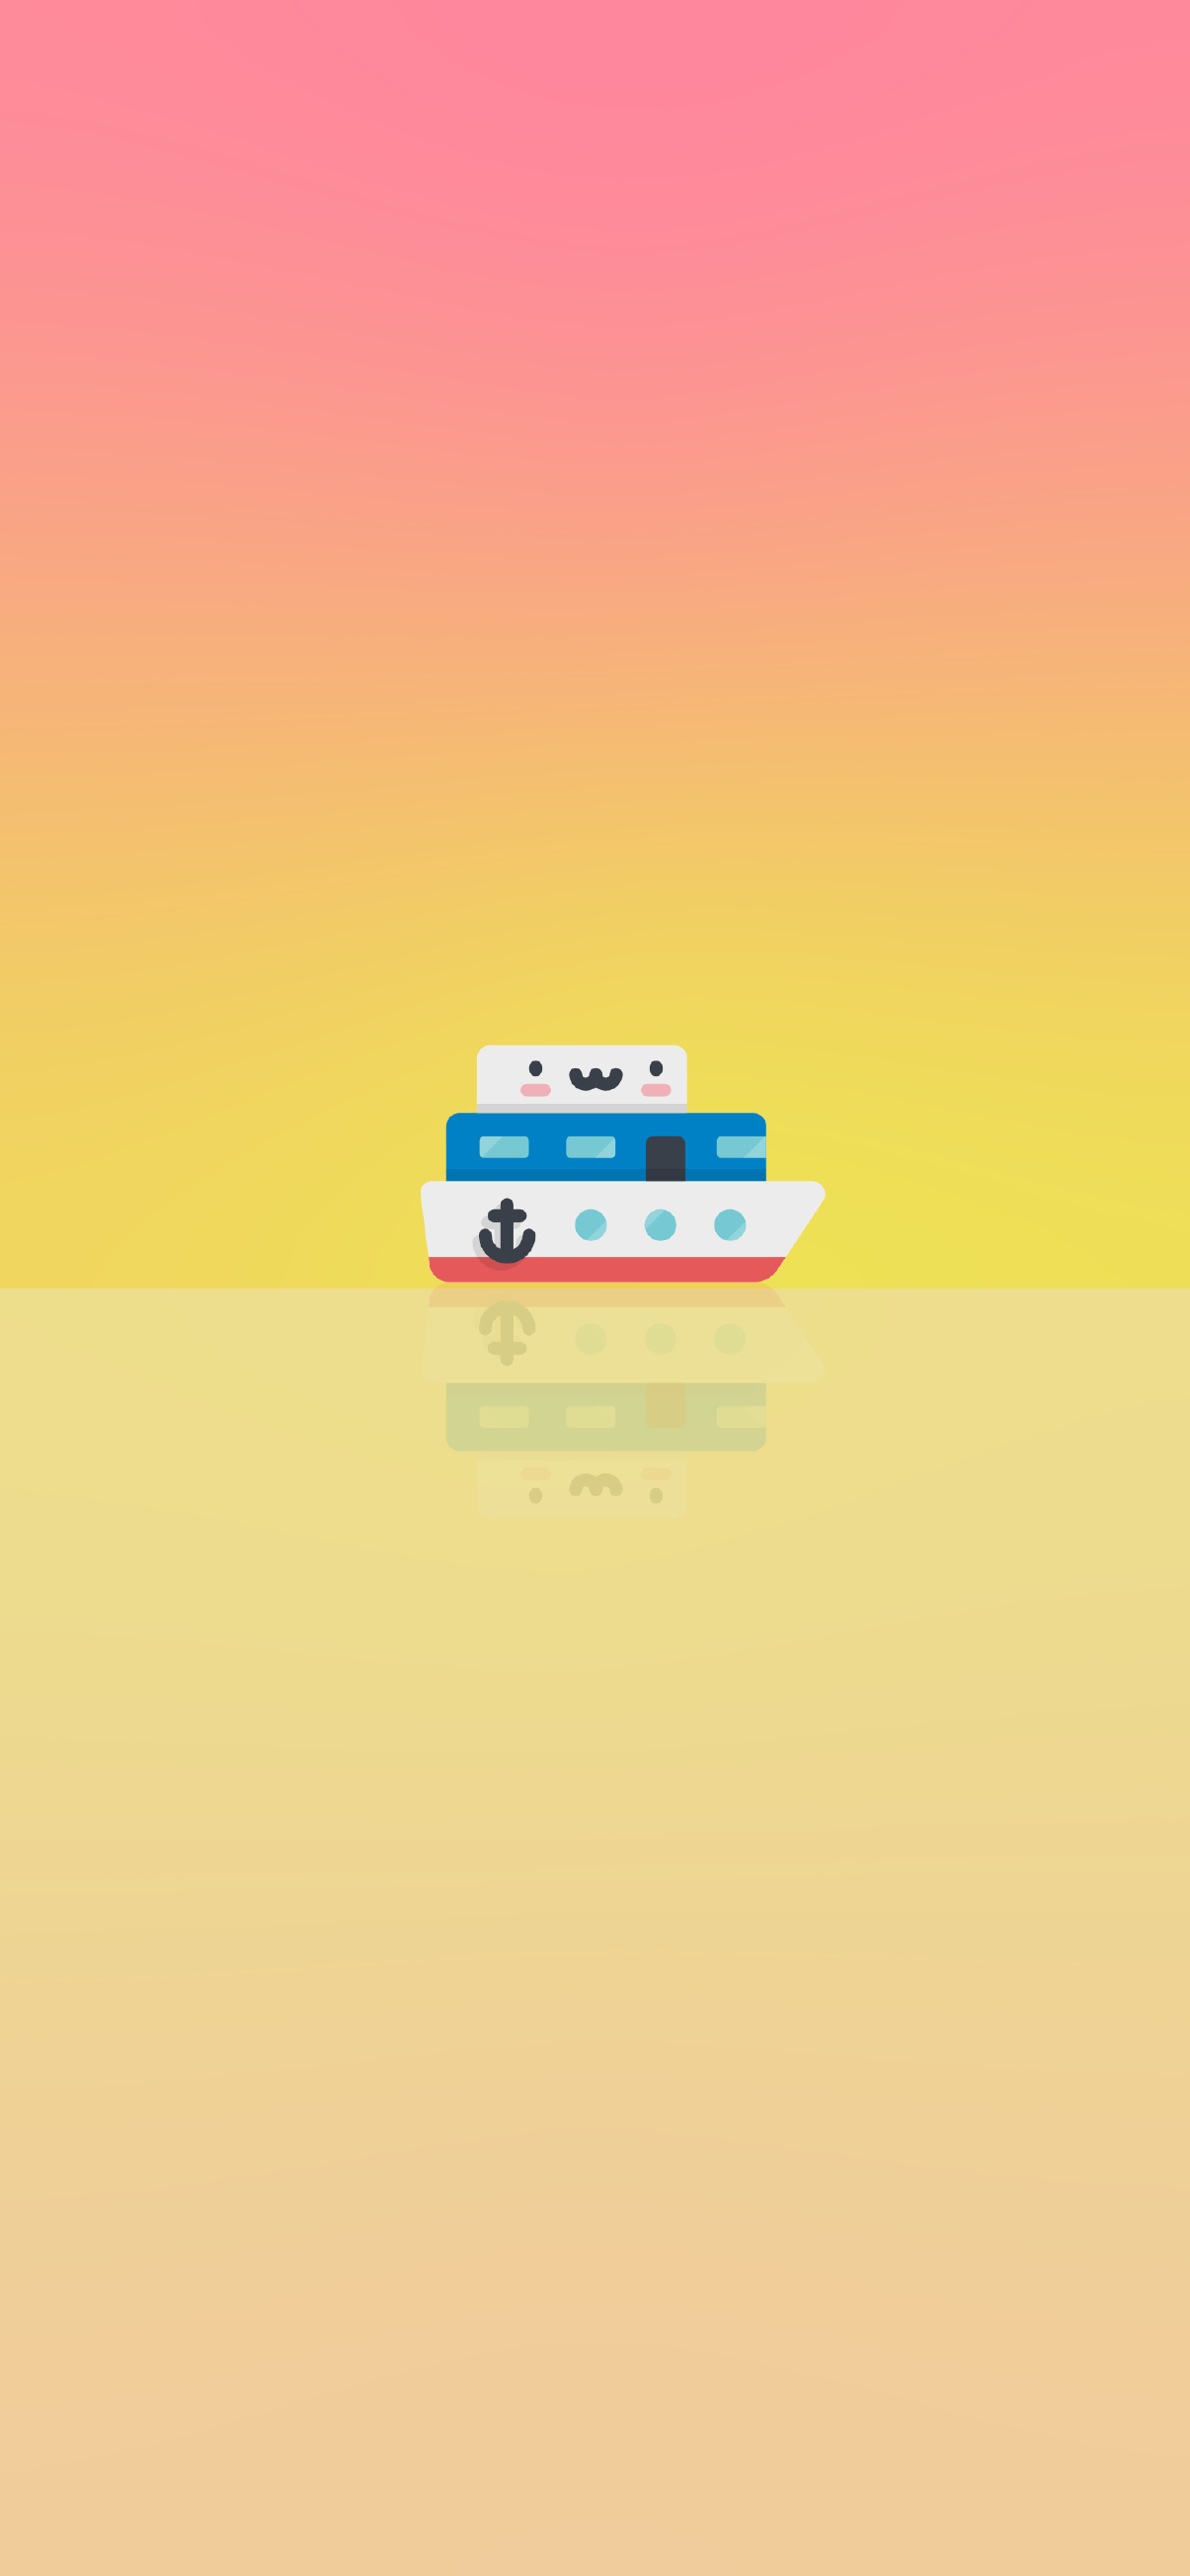 kawaii-cute-boat-ship-iphone-wallpaper-background-hd